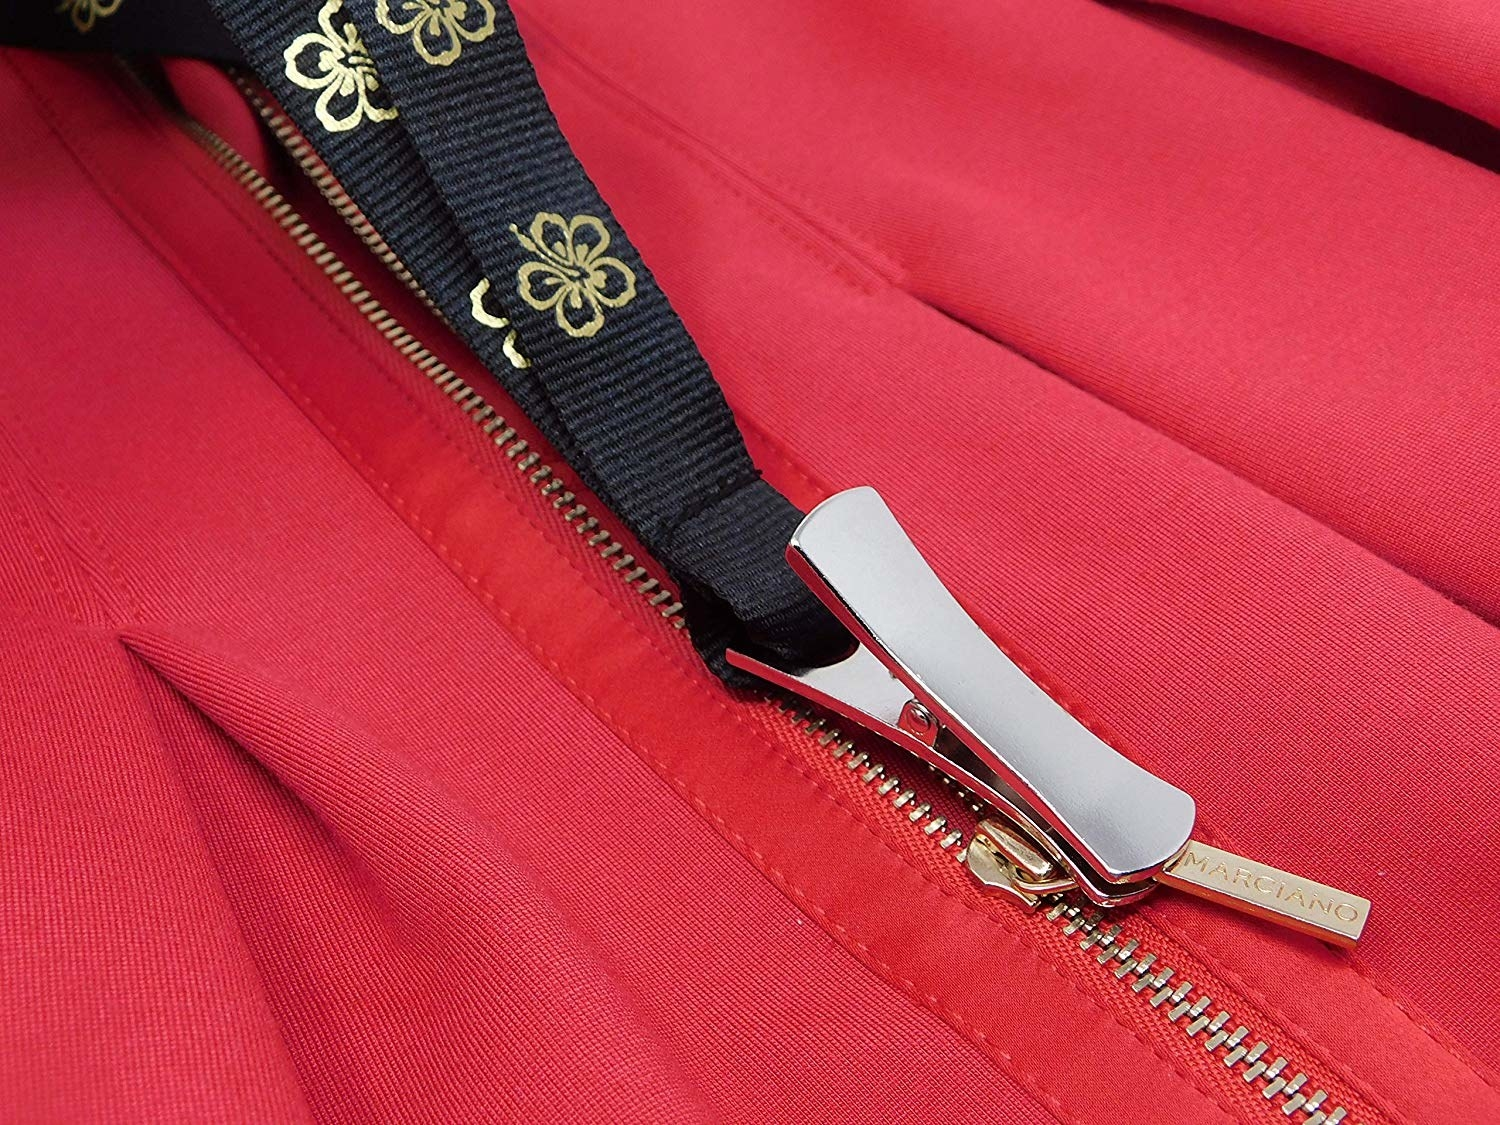 a zipper puller attached to a black zipper on a red top